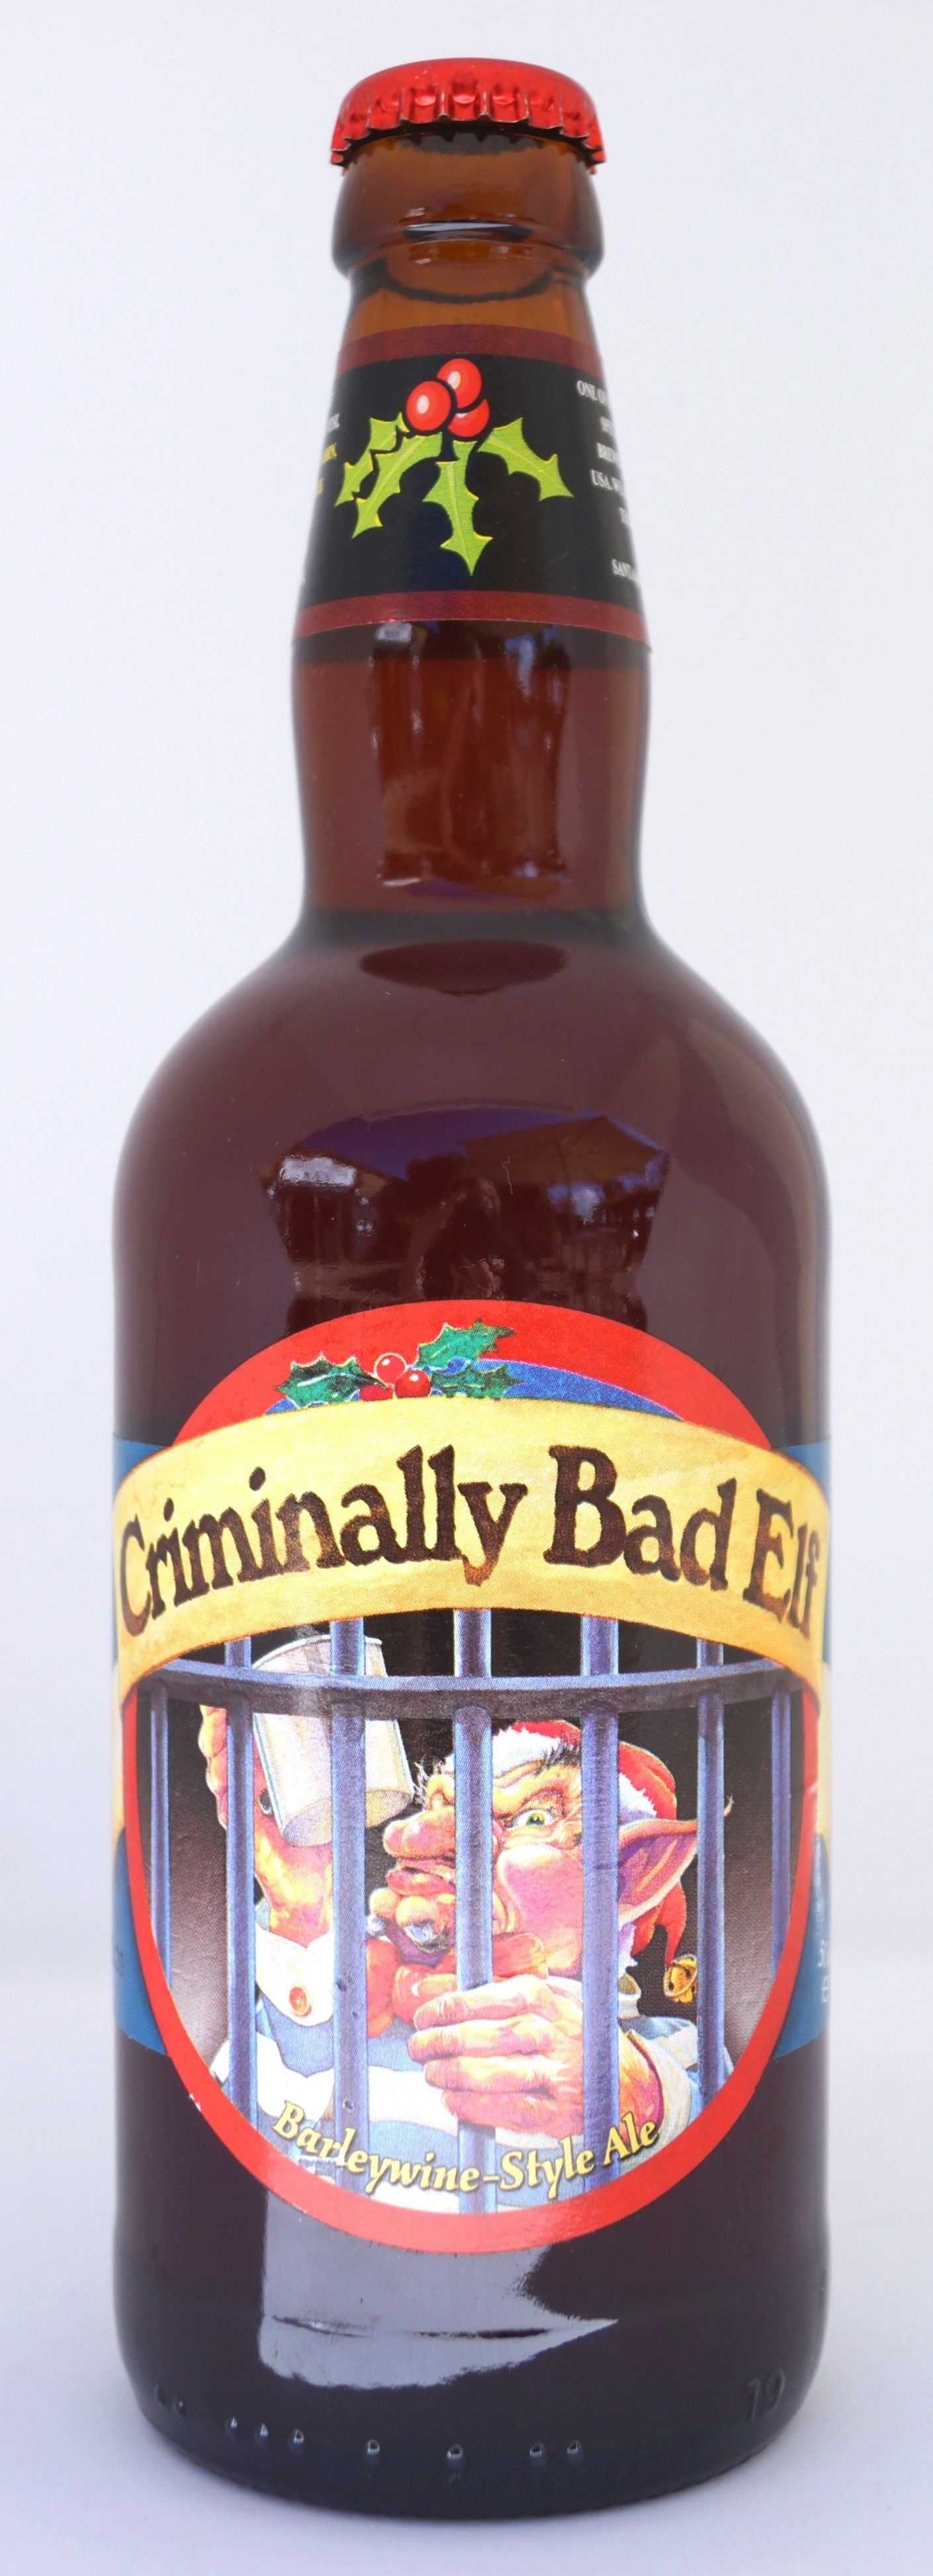 Criminally Bad Elf Barley Wine